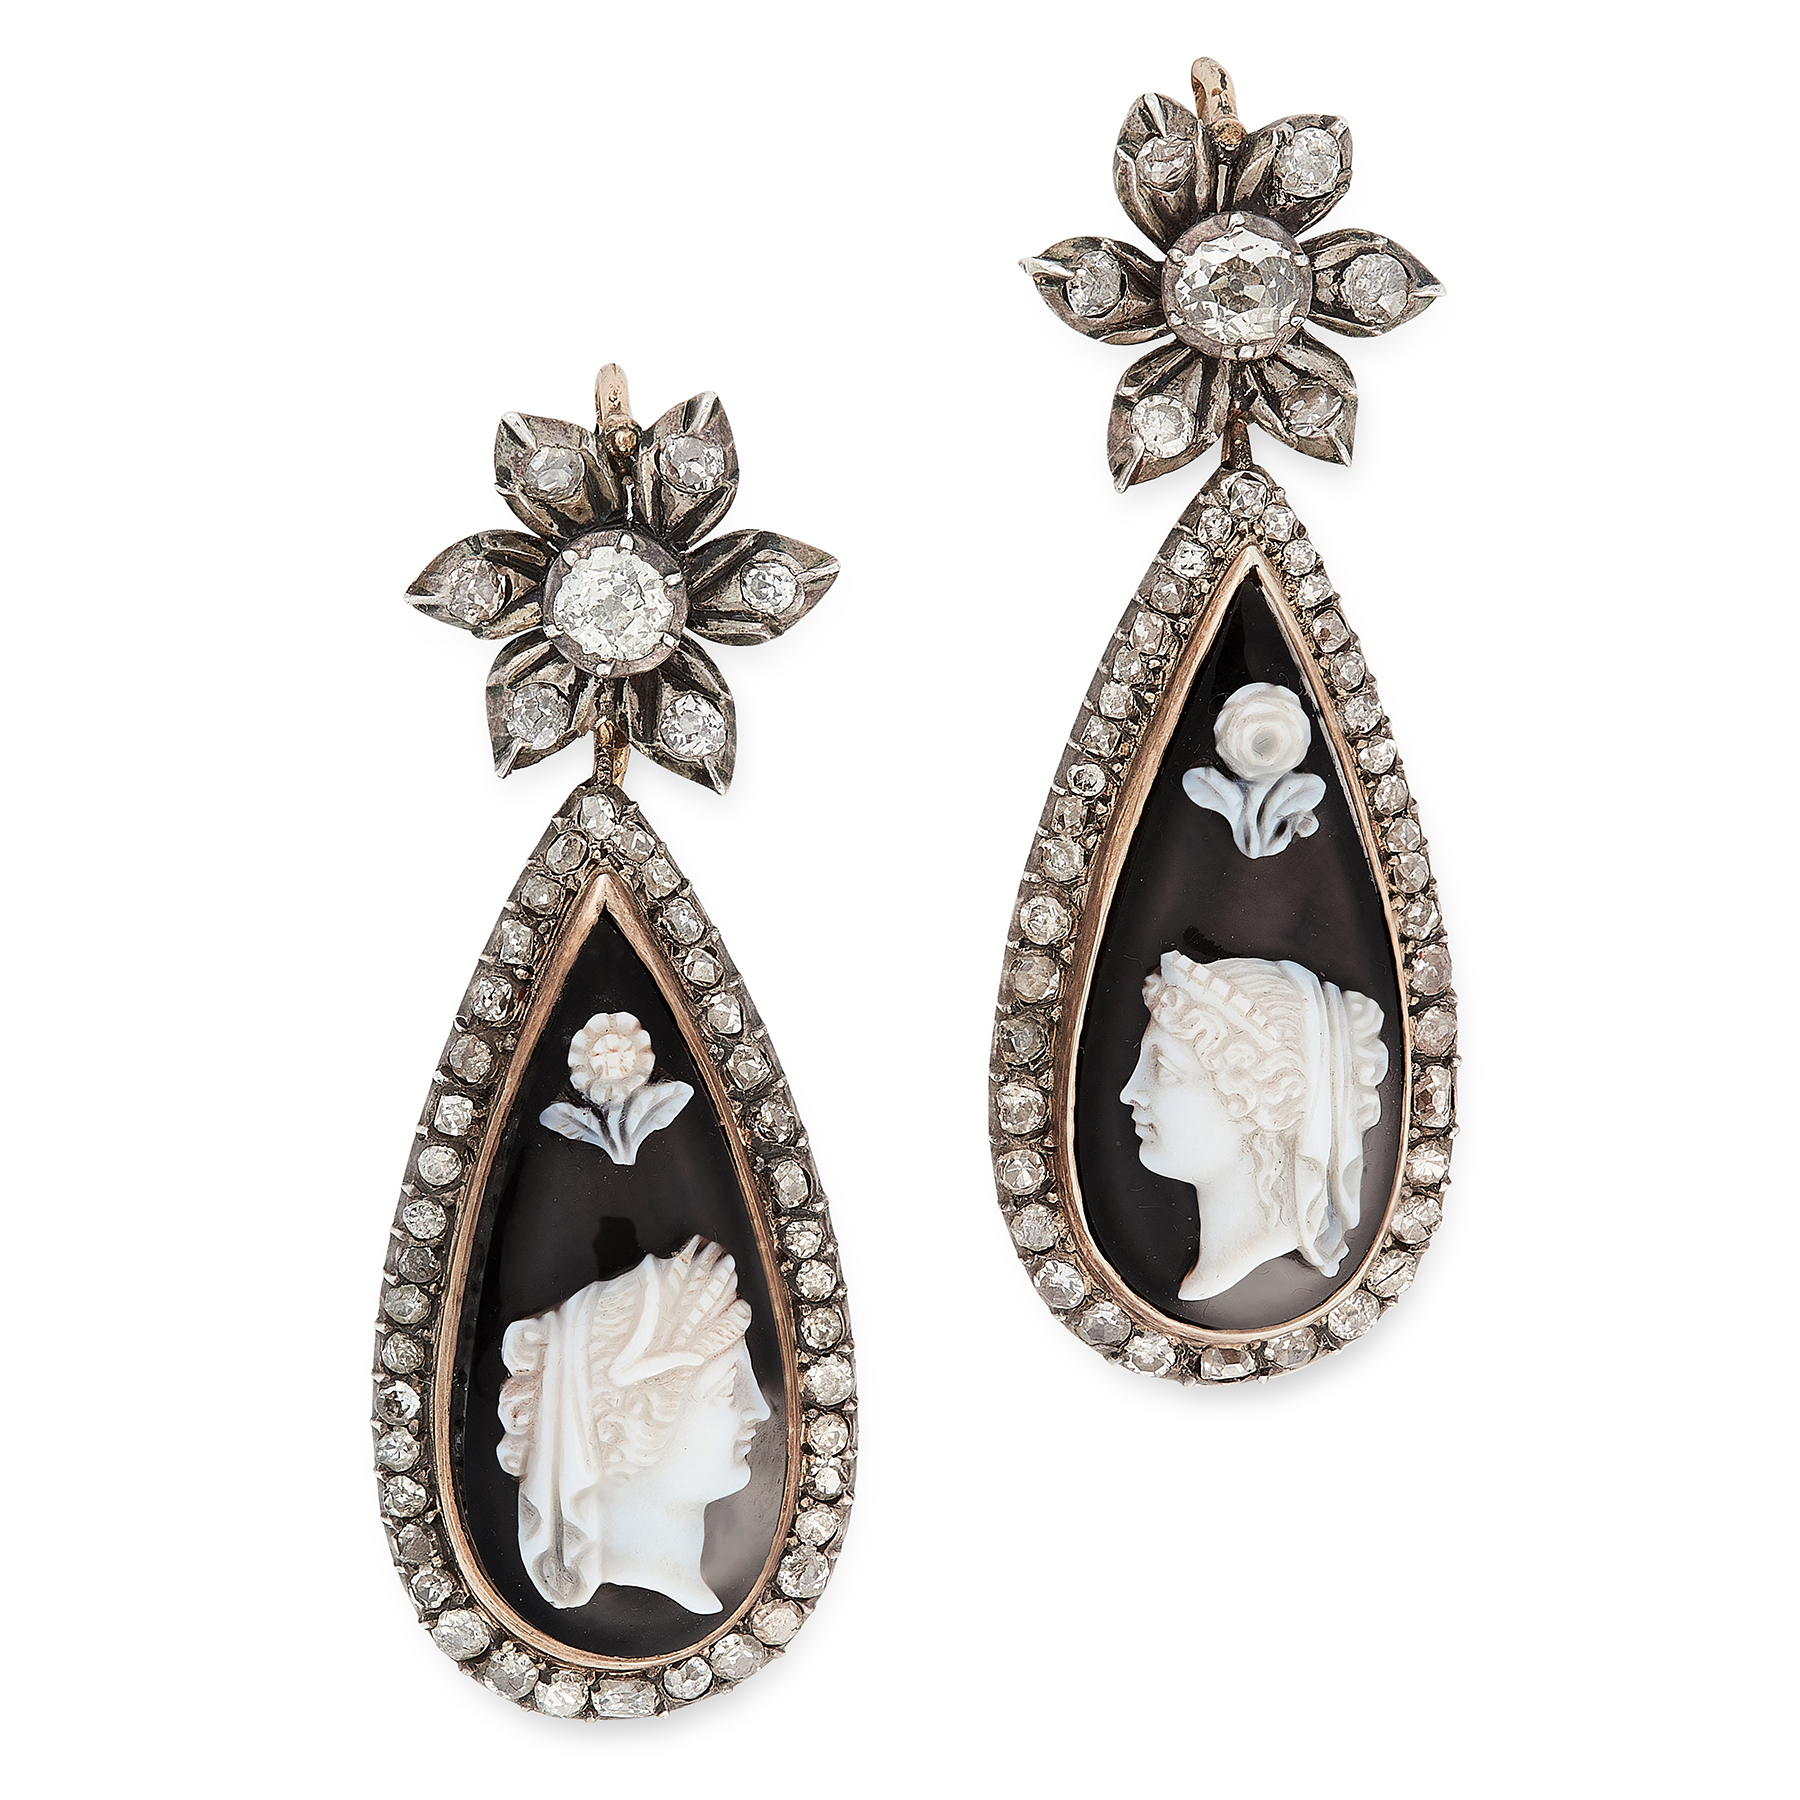 A PAIR OF ANTIQUE CAMEO AND DIAMOND EARRINGS, 19TH CENTURY in yellow gold and silver, each set